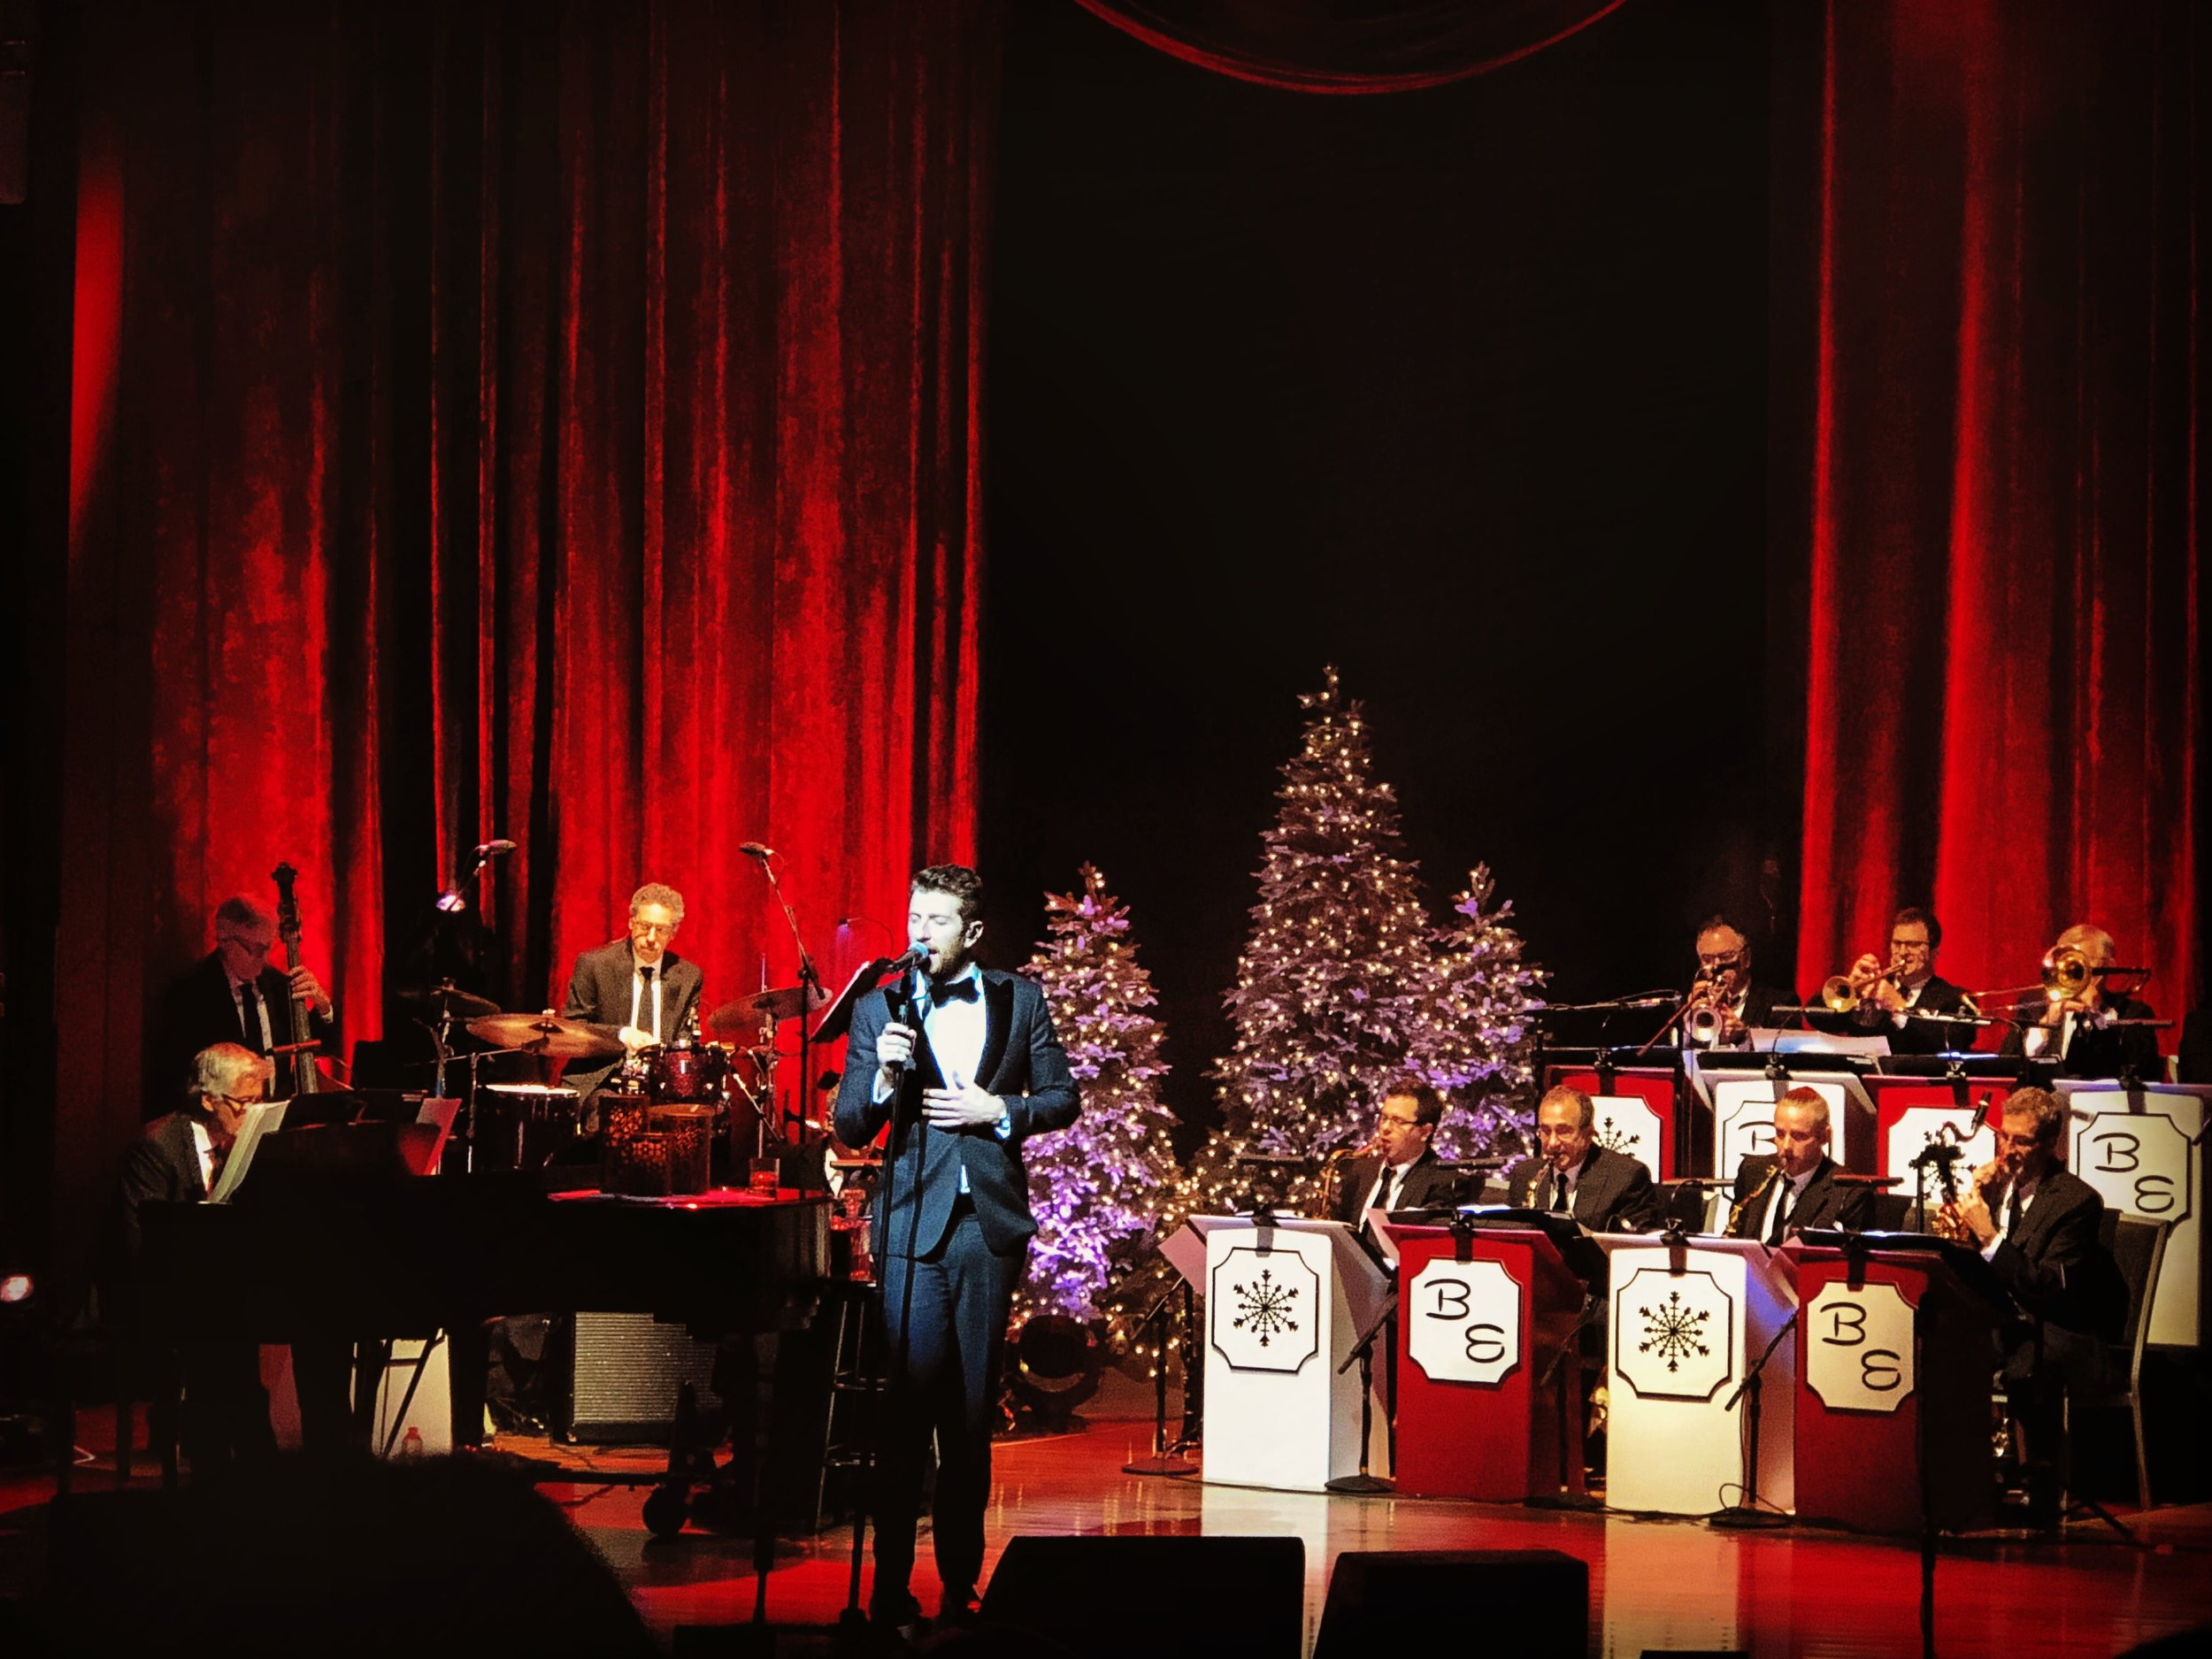 """#9 Brett eledredge - CMA Theater - December 15, 2018""""O Holy Night""""The best showman of country's latest generation. Brett Eledredge brought a spirited unity as he performed holiday classics and new selections from his """"Glow"""" record."""